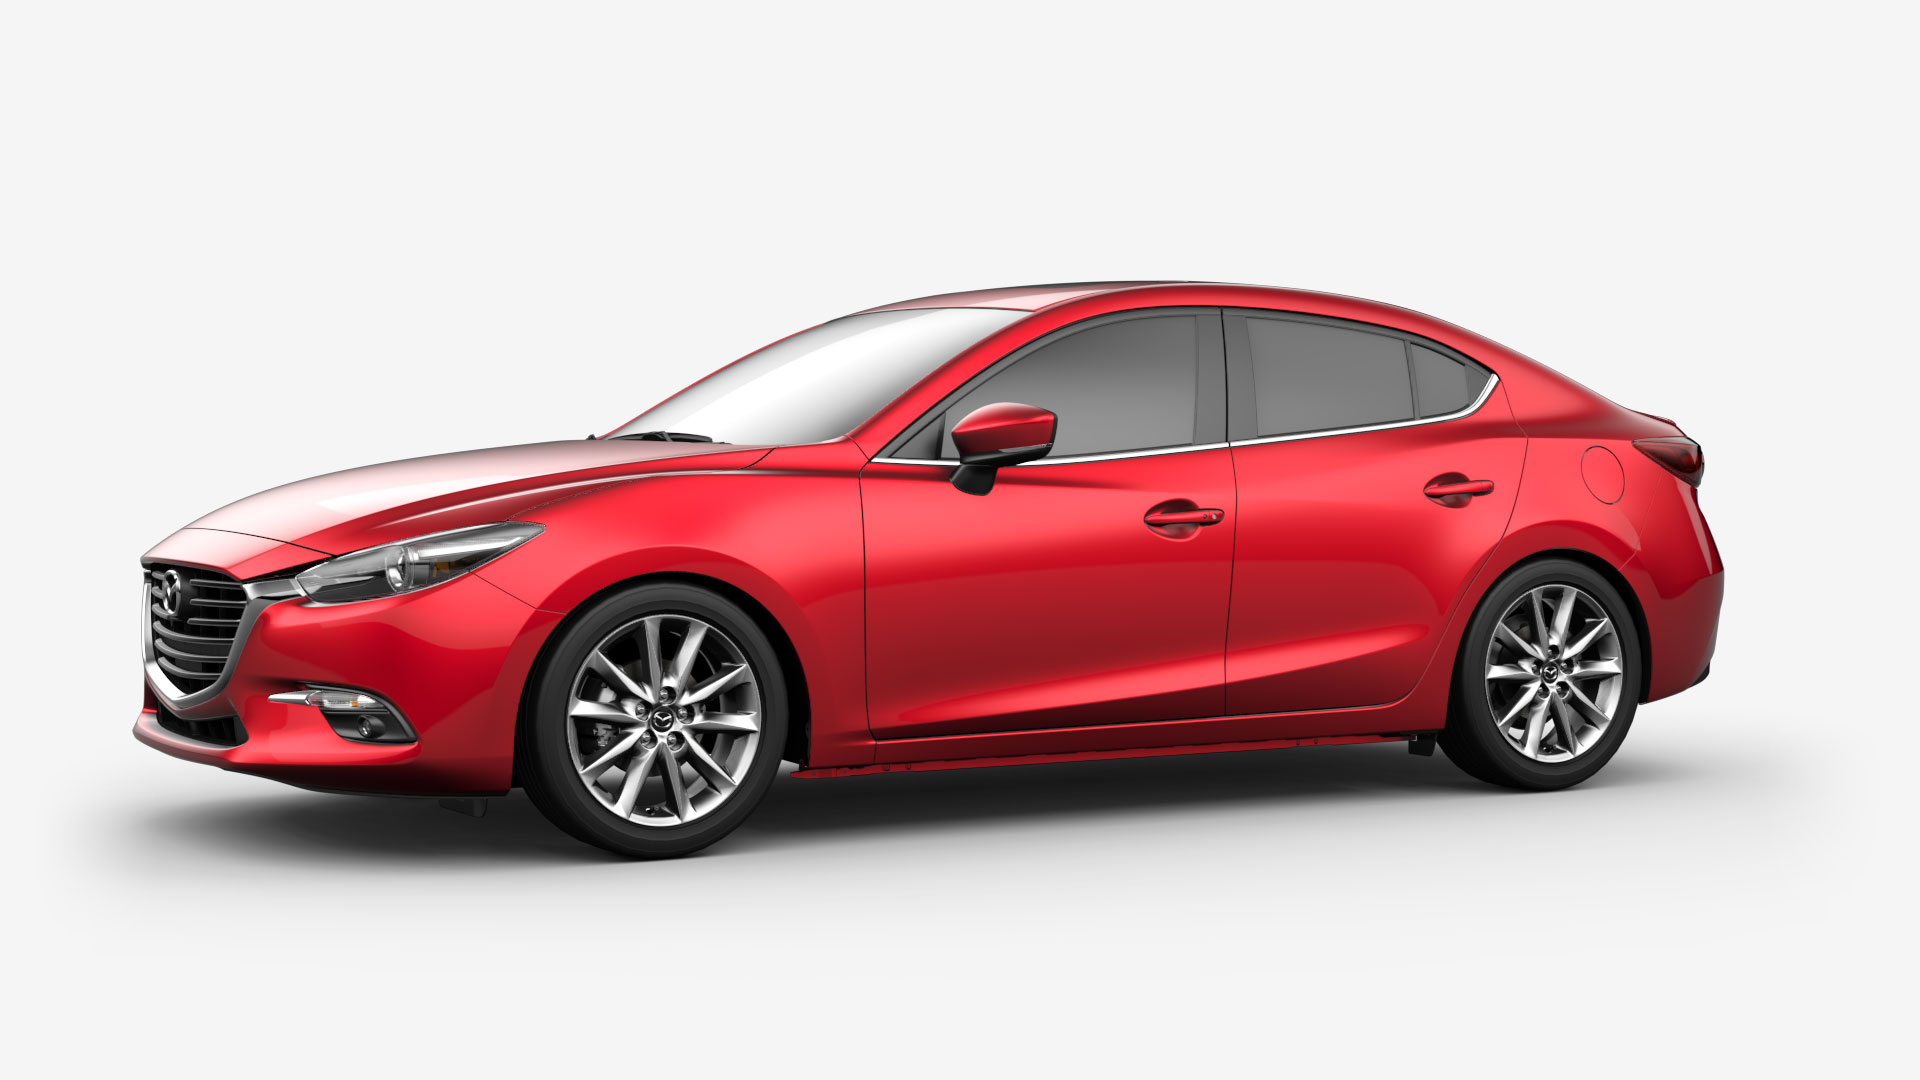 2018 mazda 3 sedan - fuel efficient compact car | mazda usa